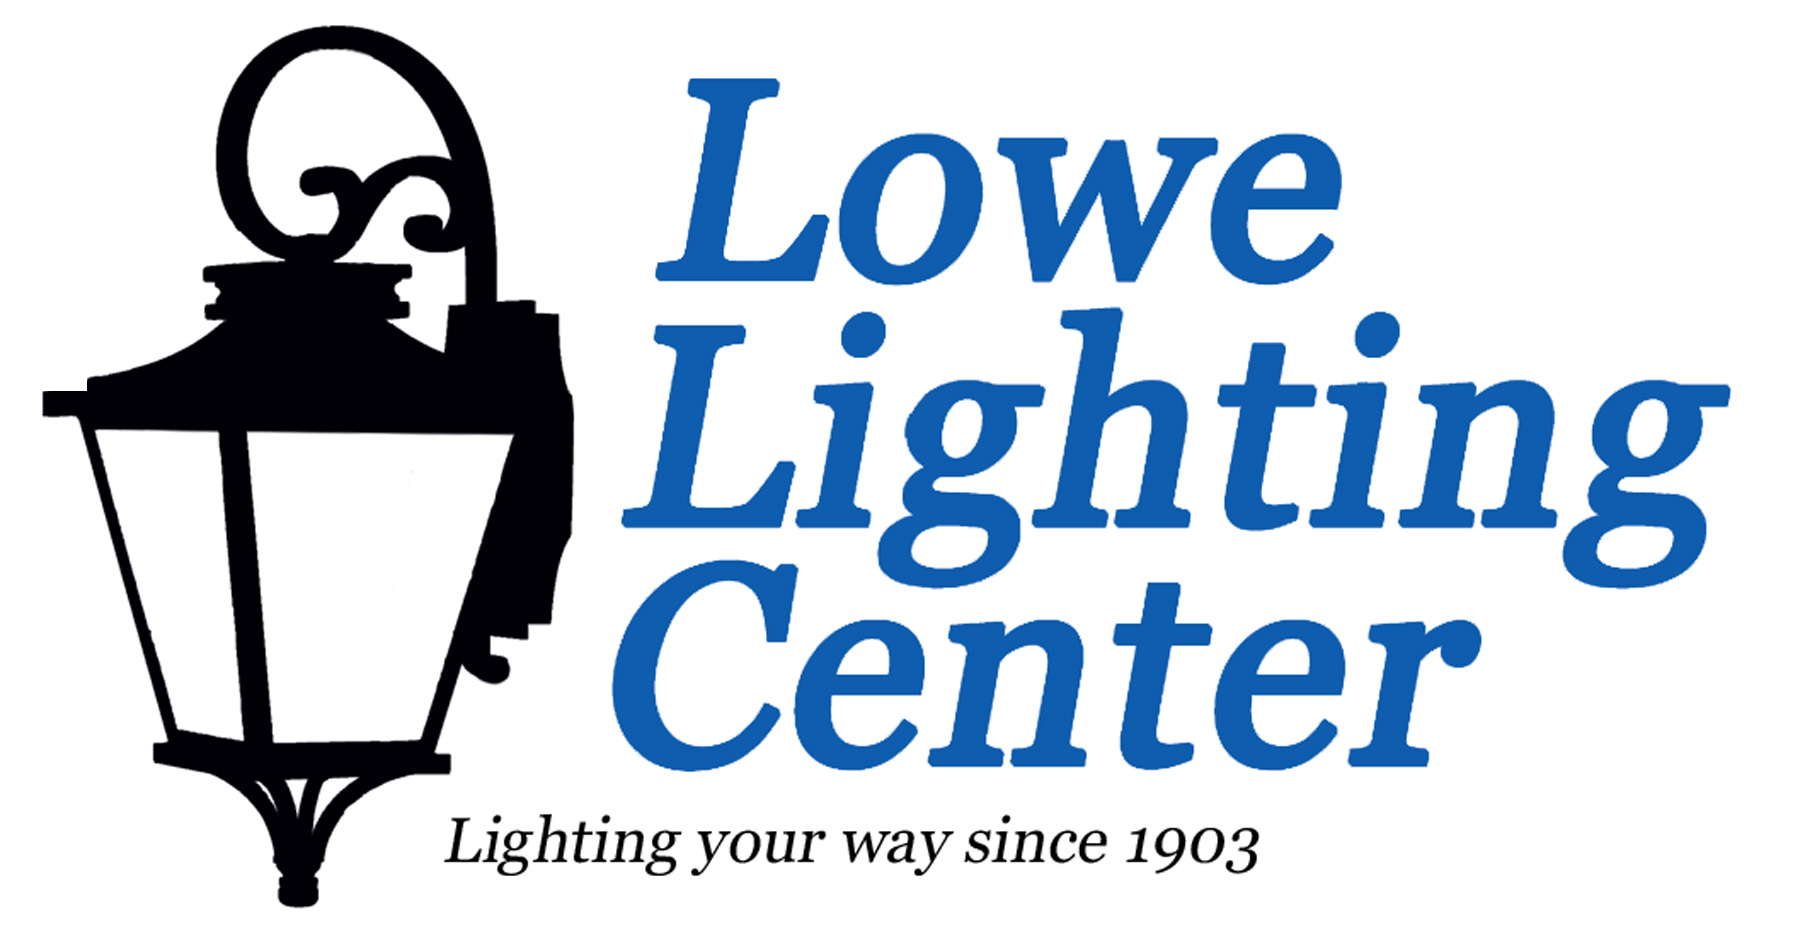 LOWE ELECTRIC SUPPLY CO.